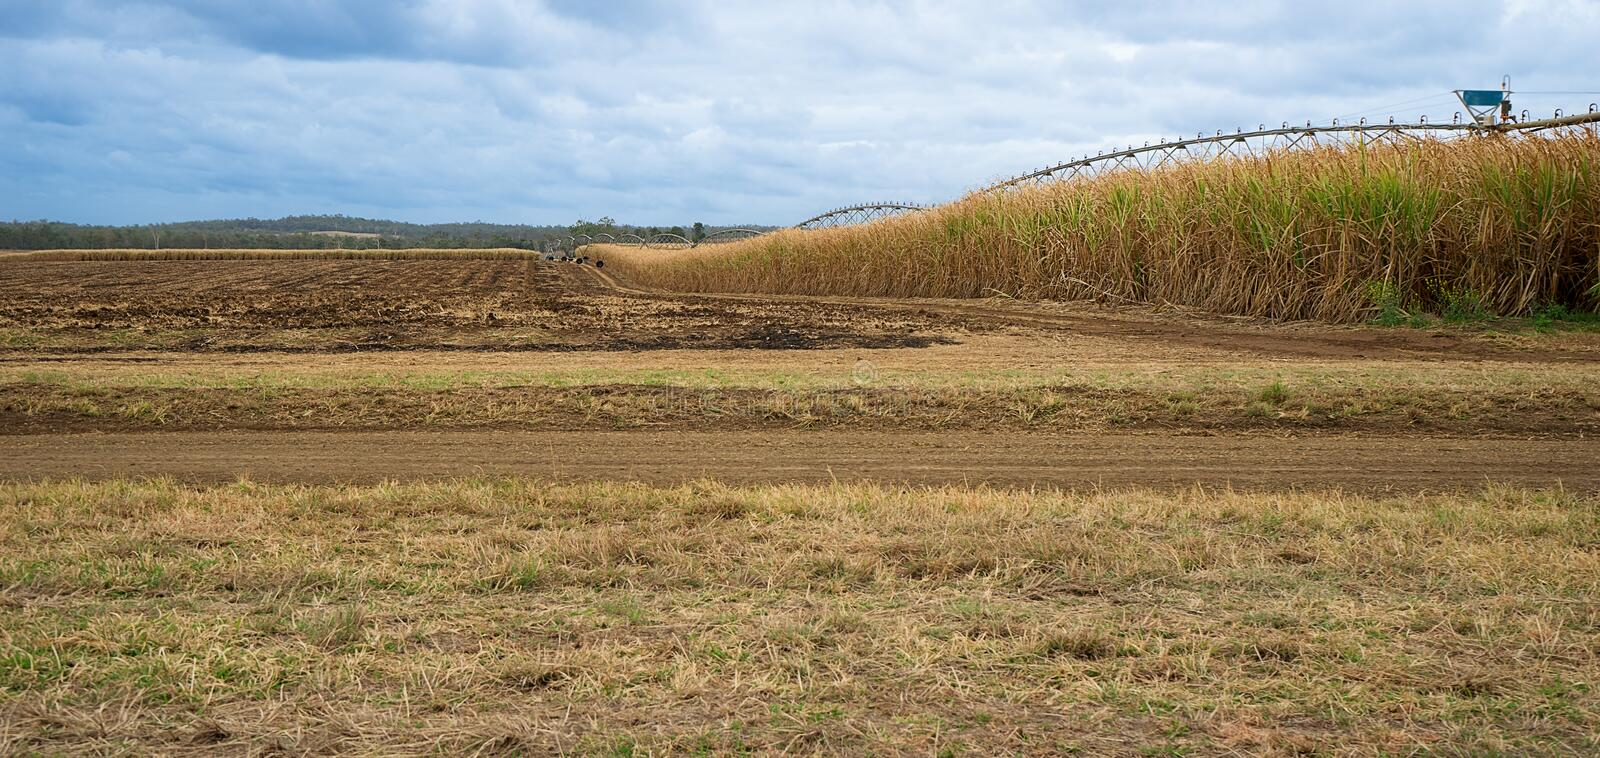 Australian Sugarcane Farm Landscape. With harvested field and a field of sugar cane growing ready for harvest in winter royalty free stock image